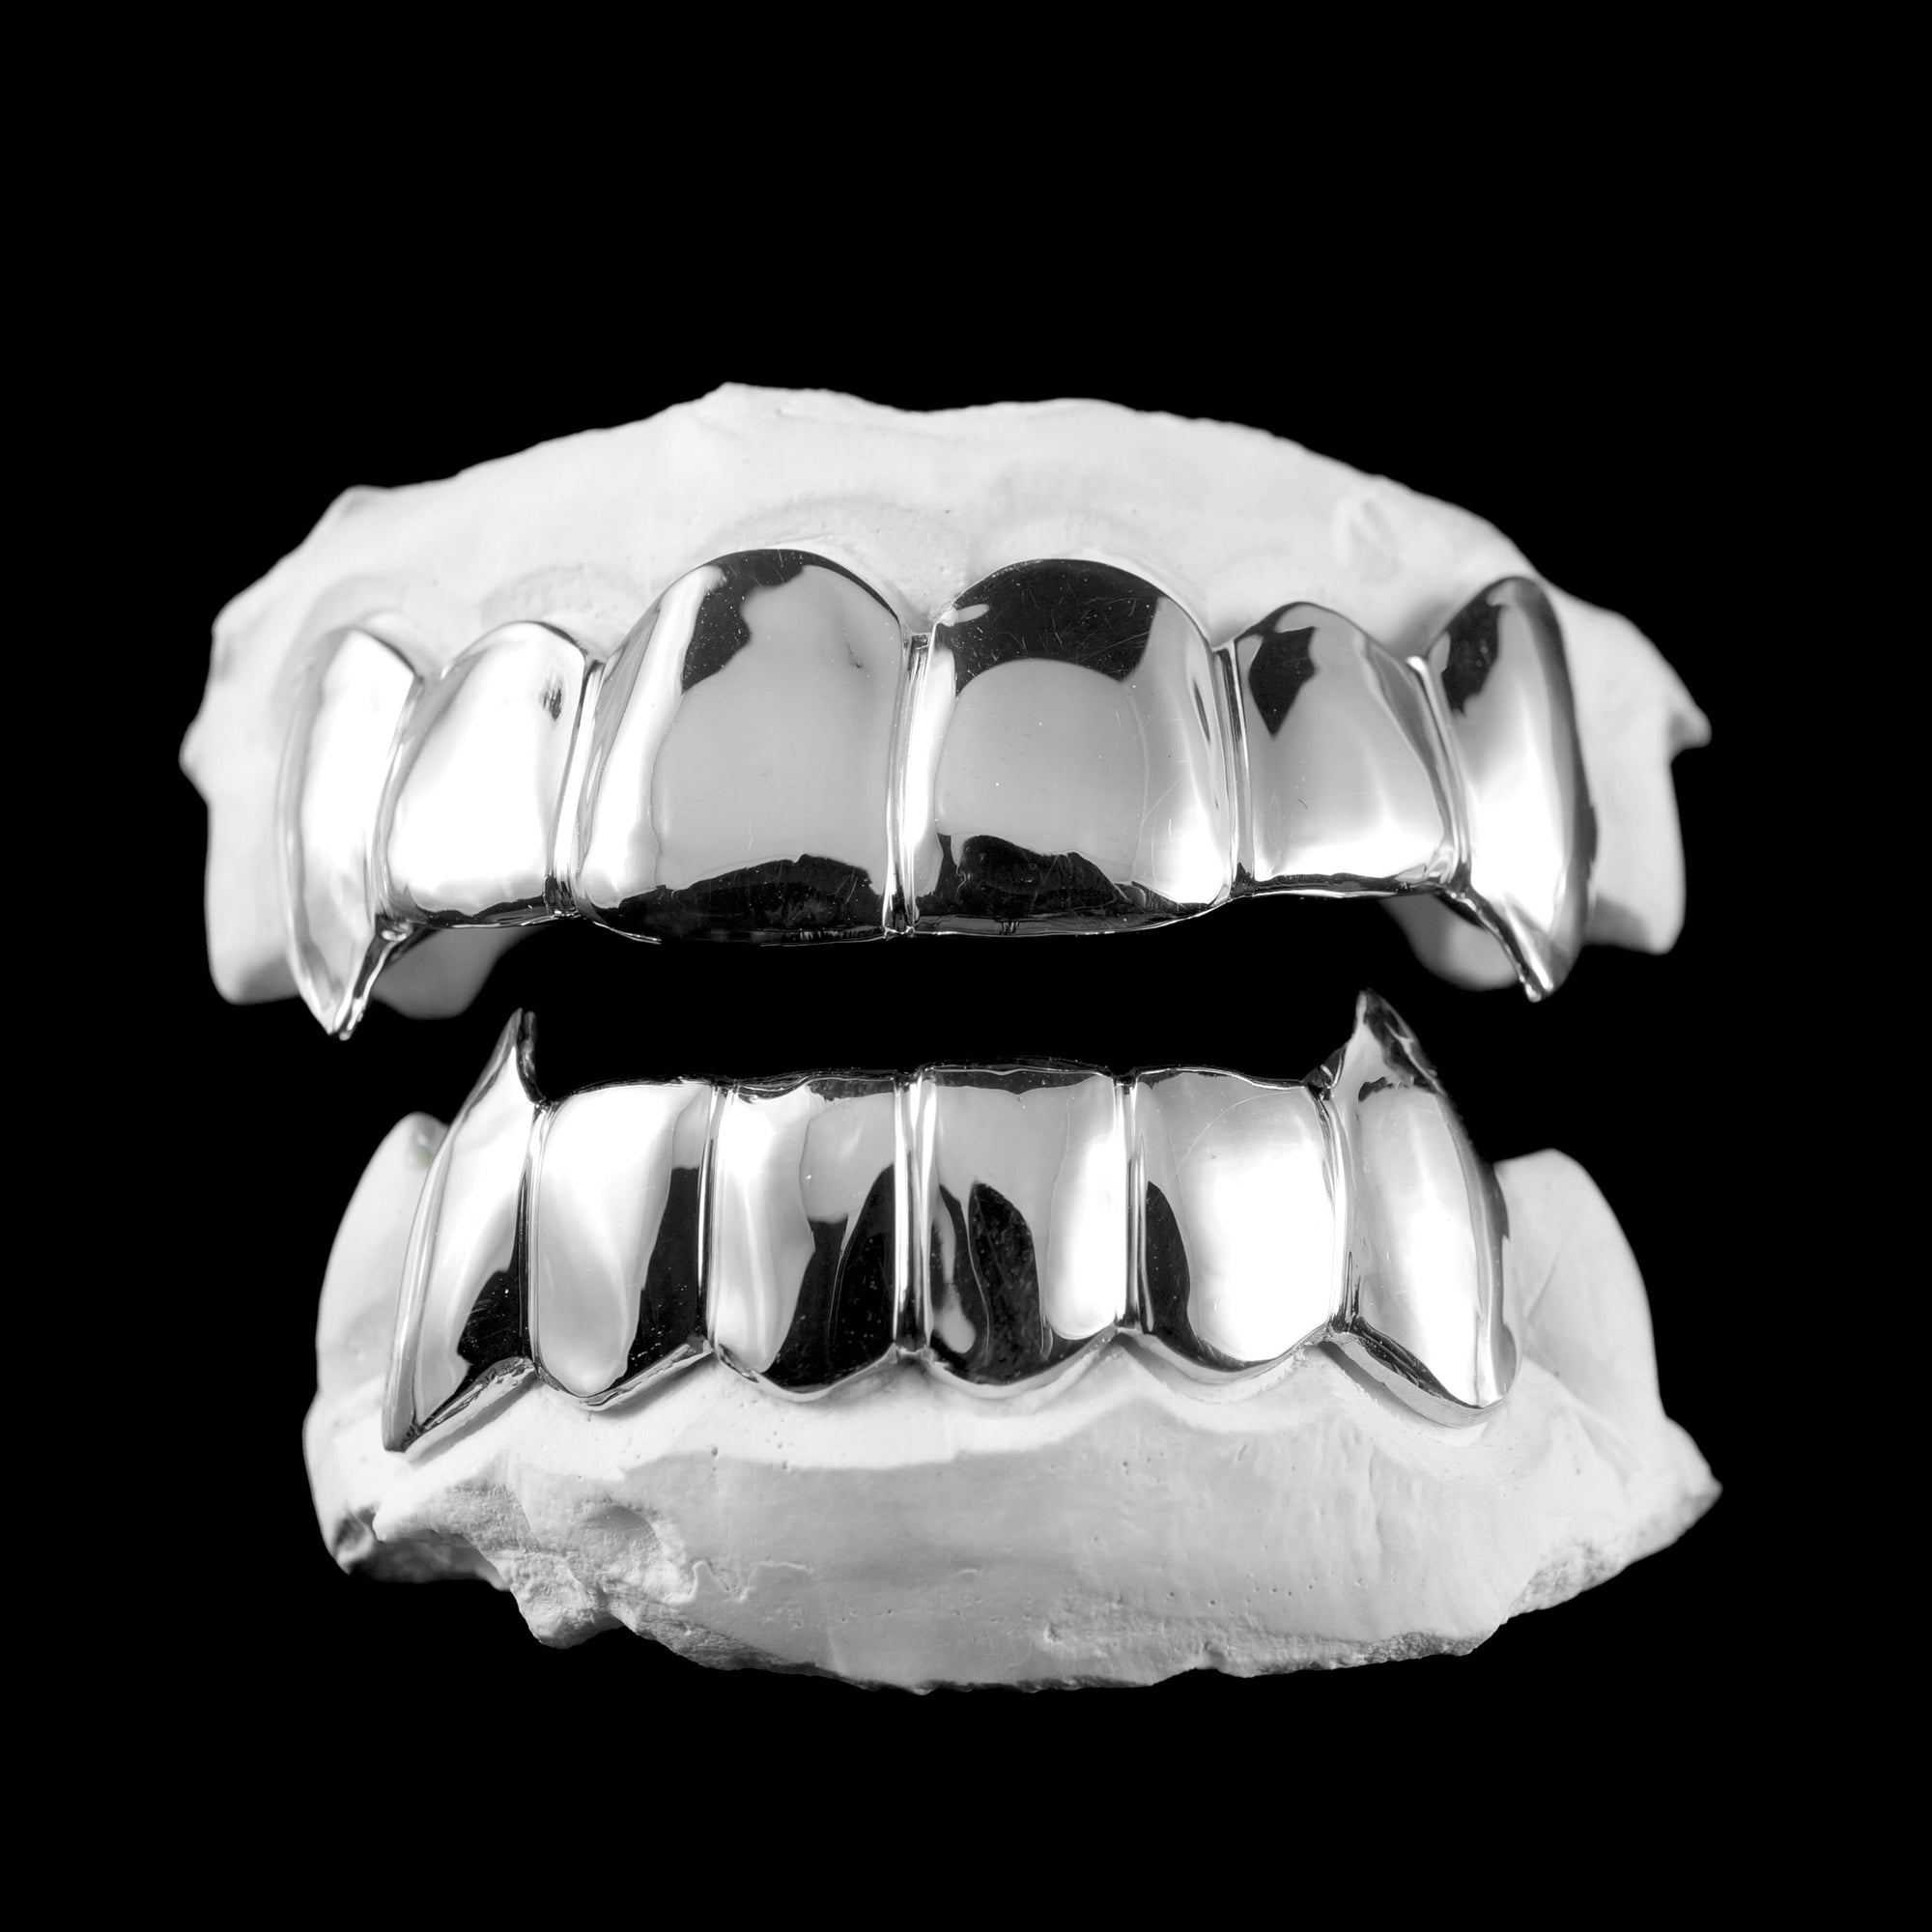 Silver Solid Fanged Grillz